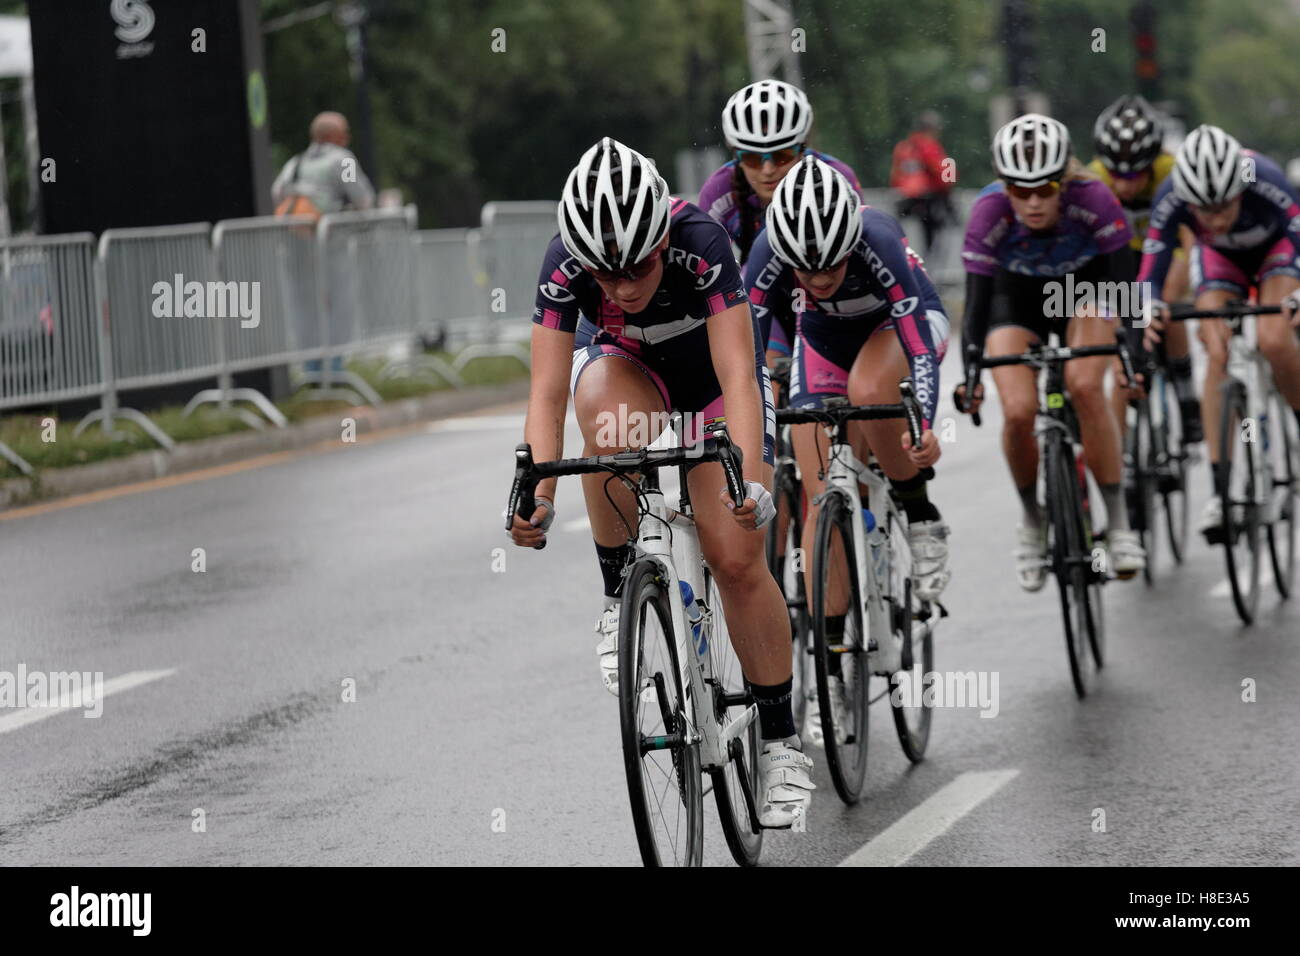 Uci Womens World TourStock Photos and Images